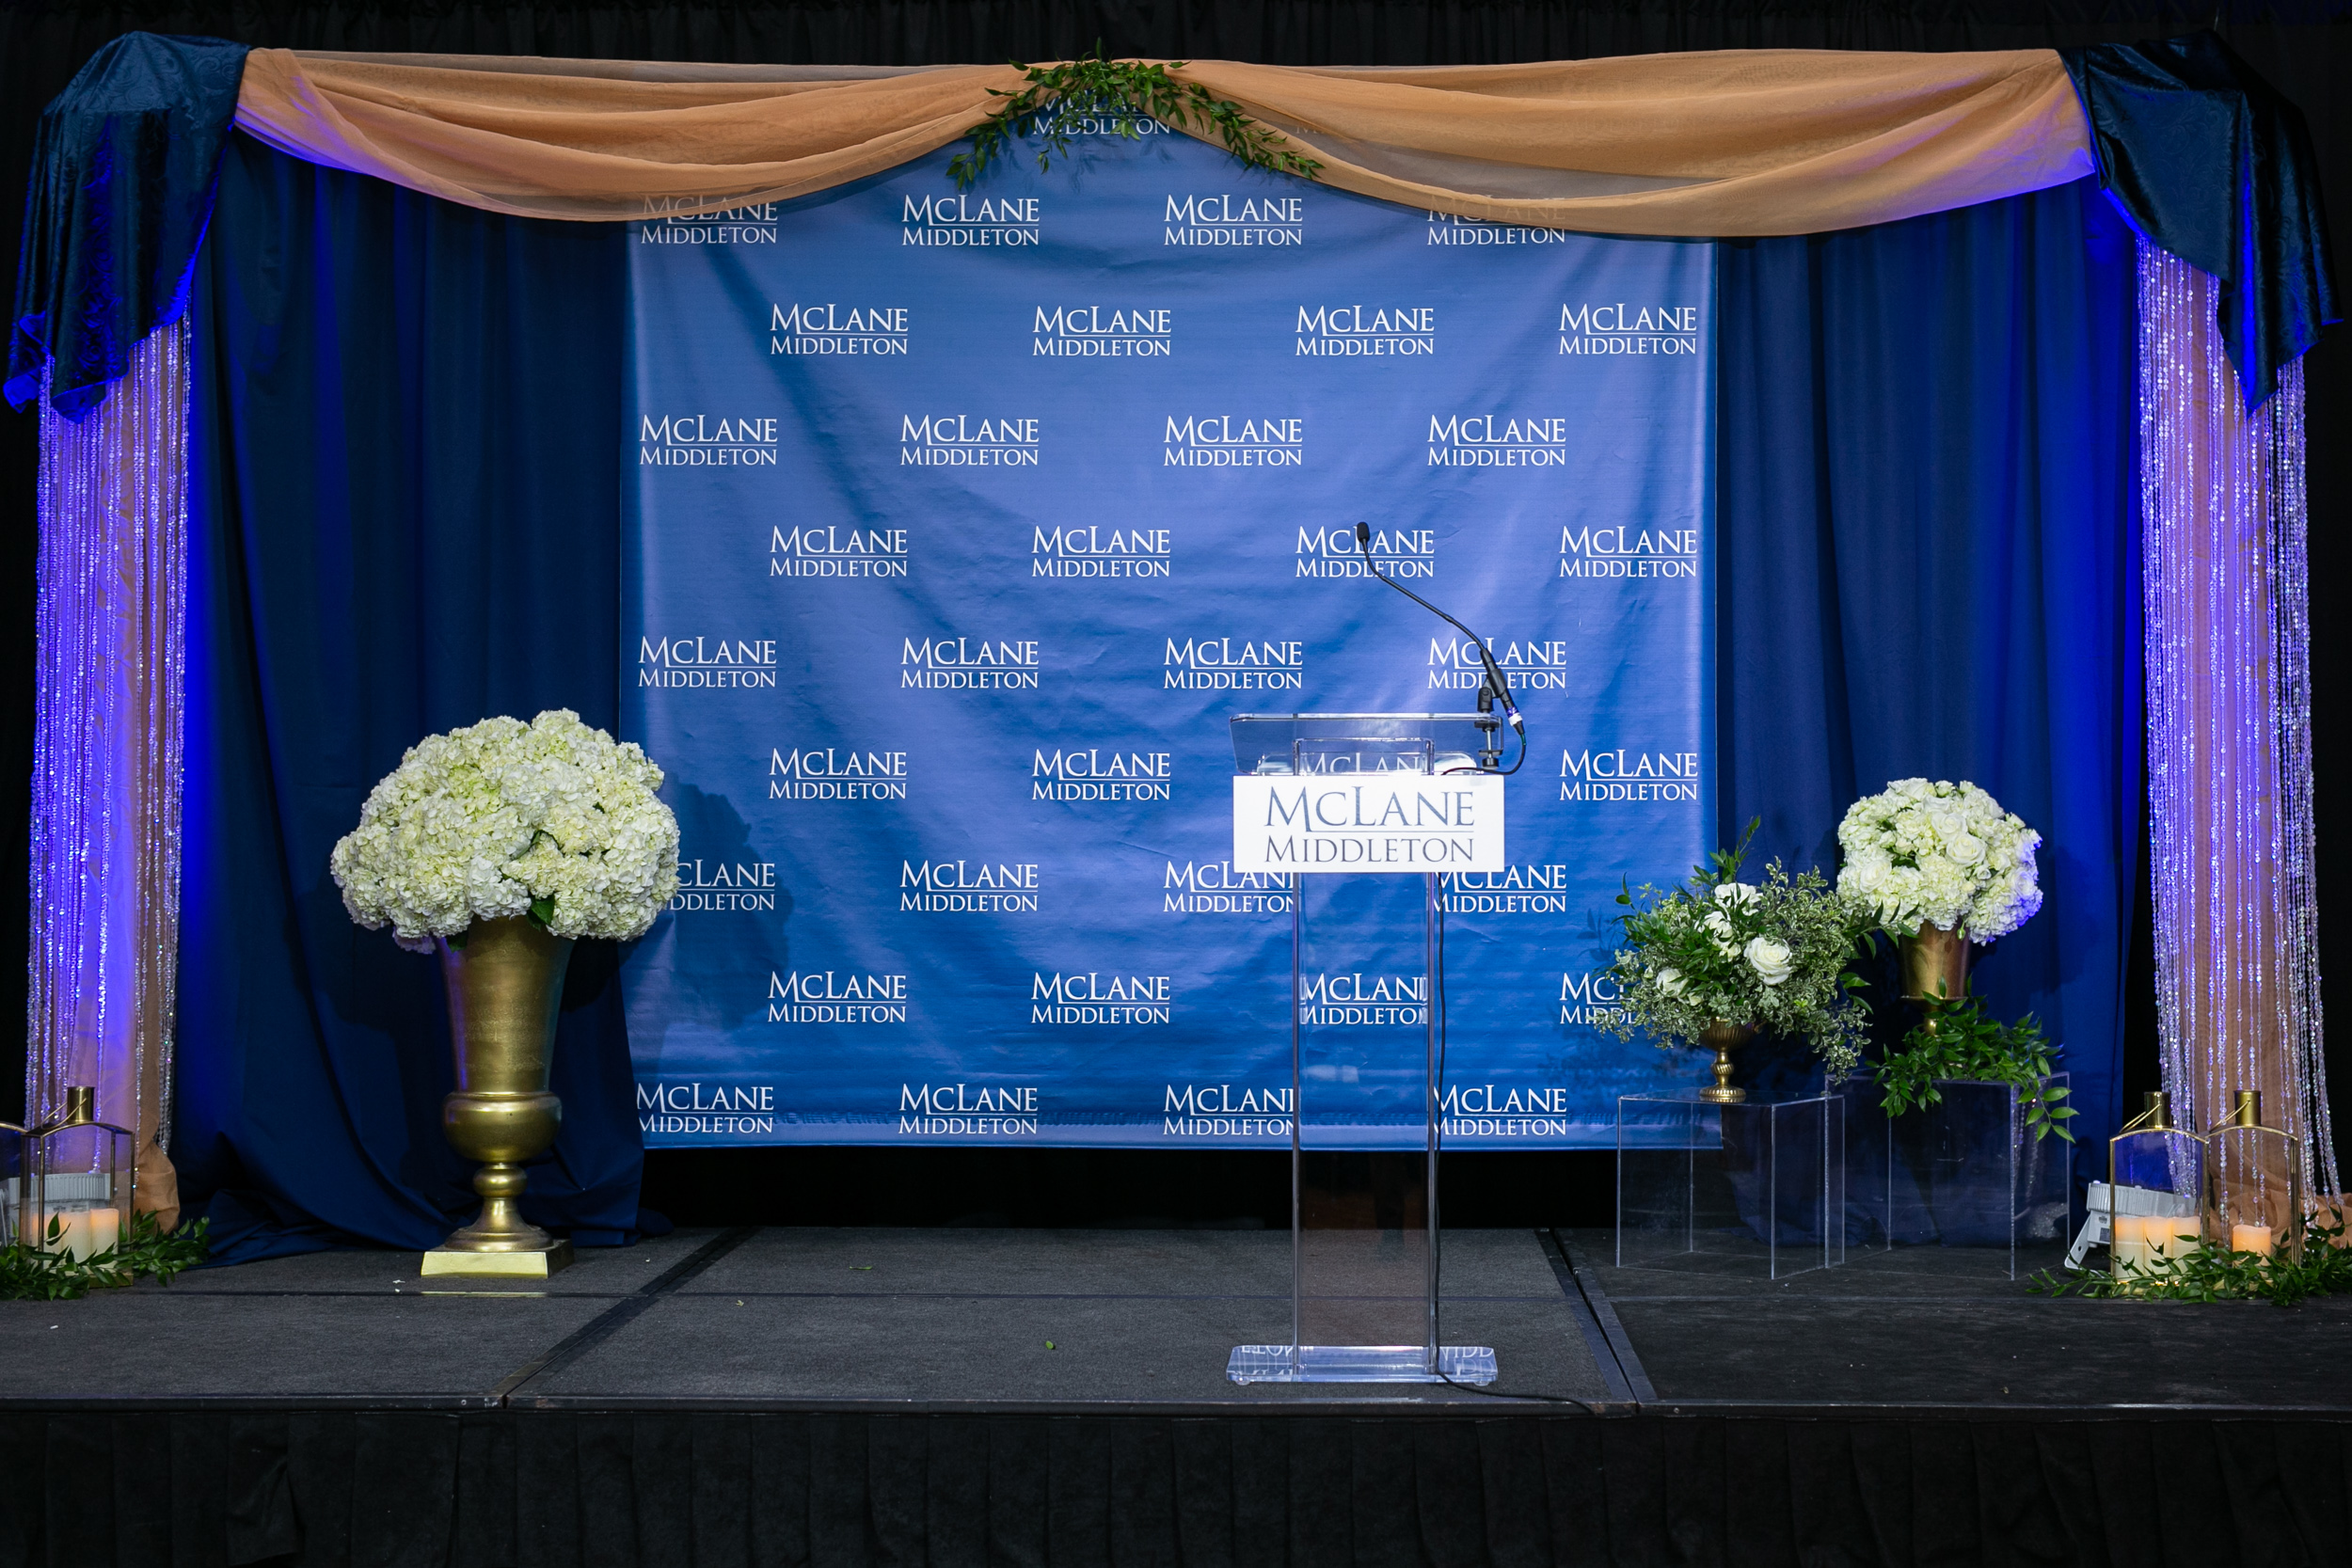 Malloy_Events_Pizzuti_McLane_Middleton_Centennial_Celebration_Manchester_NH_Corporate_Production_stage_drape_floral_stagepiece